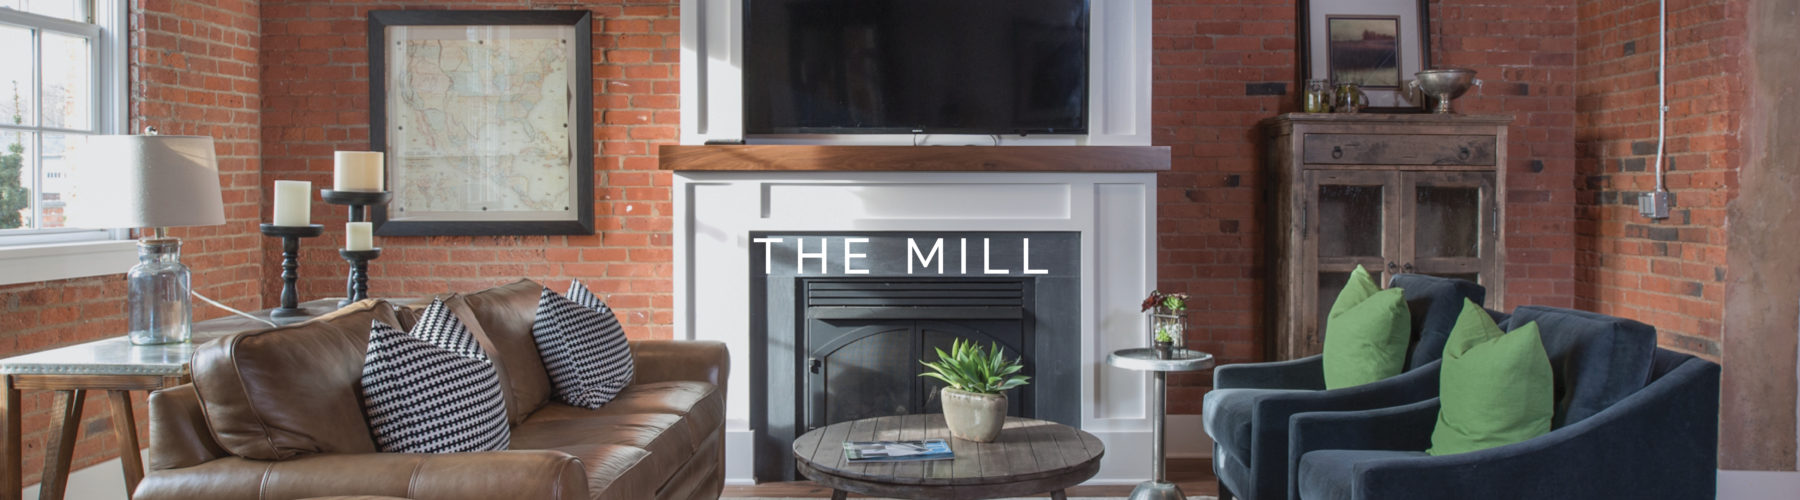 66High_TheMill_Header_062019